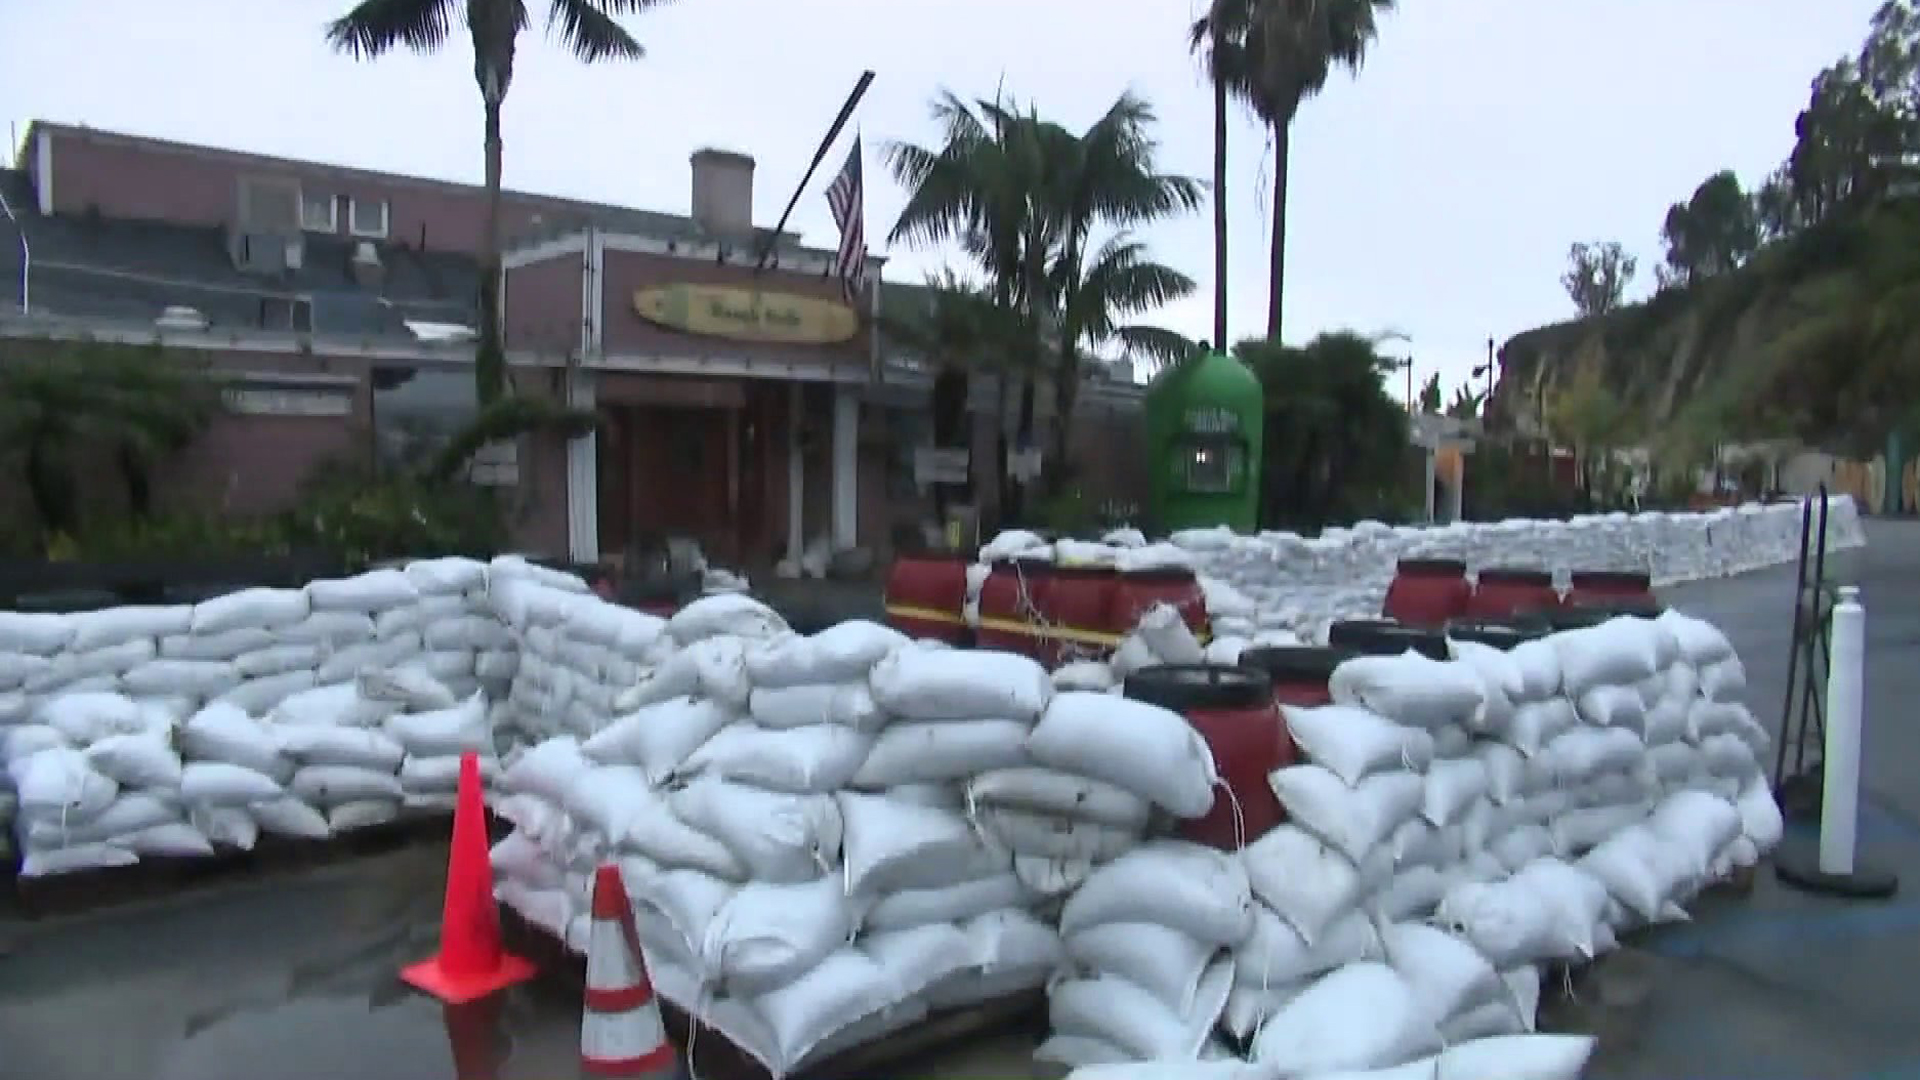 Sandbags were placed outside a business in Malibu as heavy rain was forecast to hit the area on Jan. 16, 2019. (Credit: KTLA)